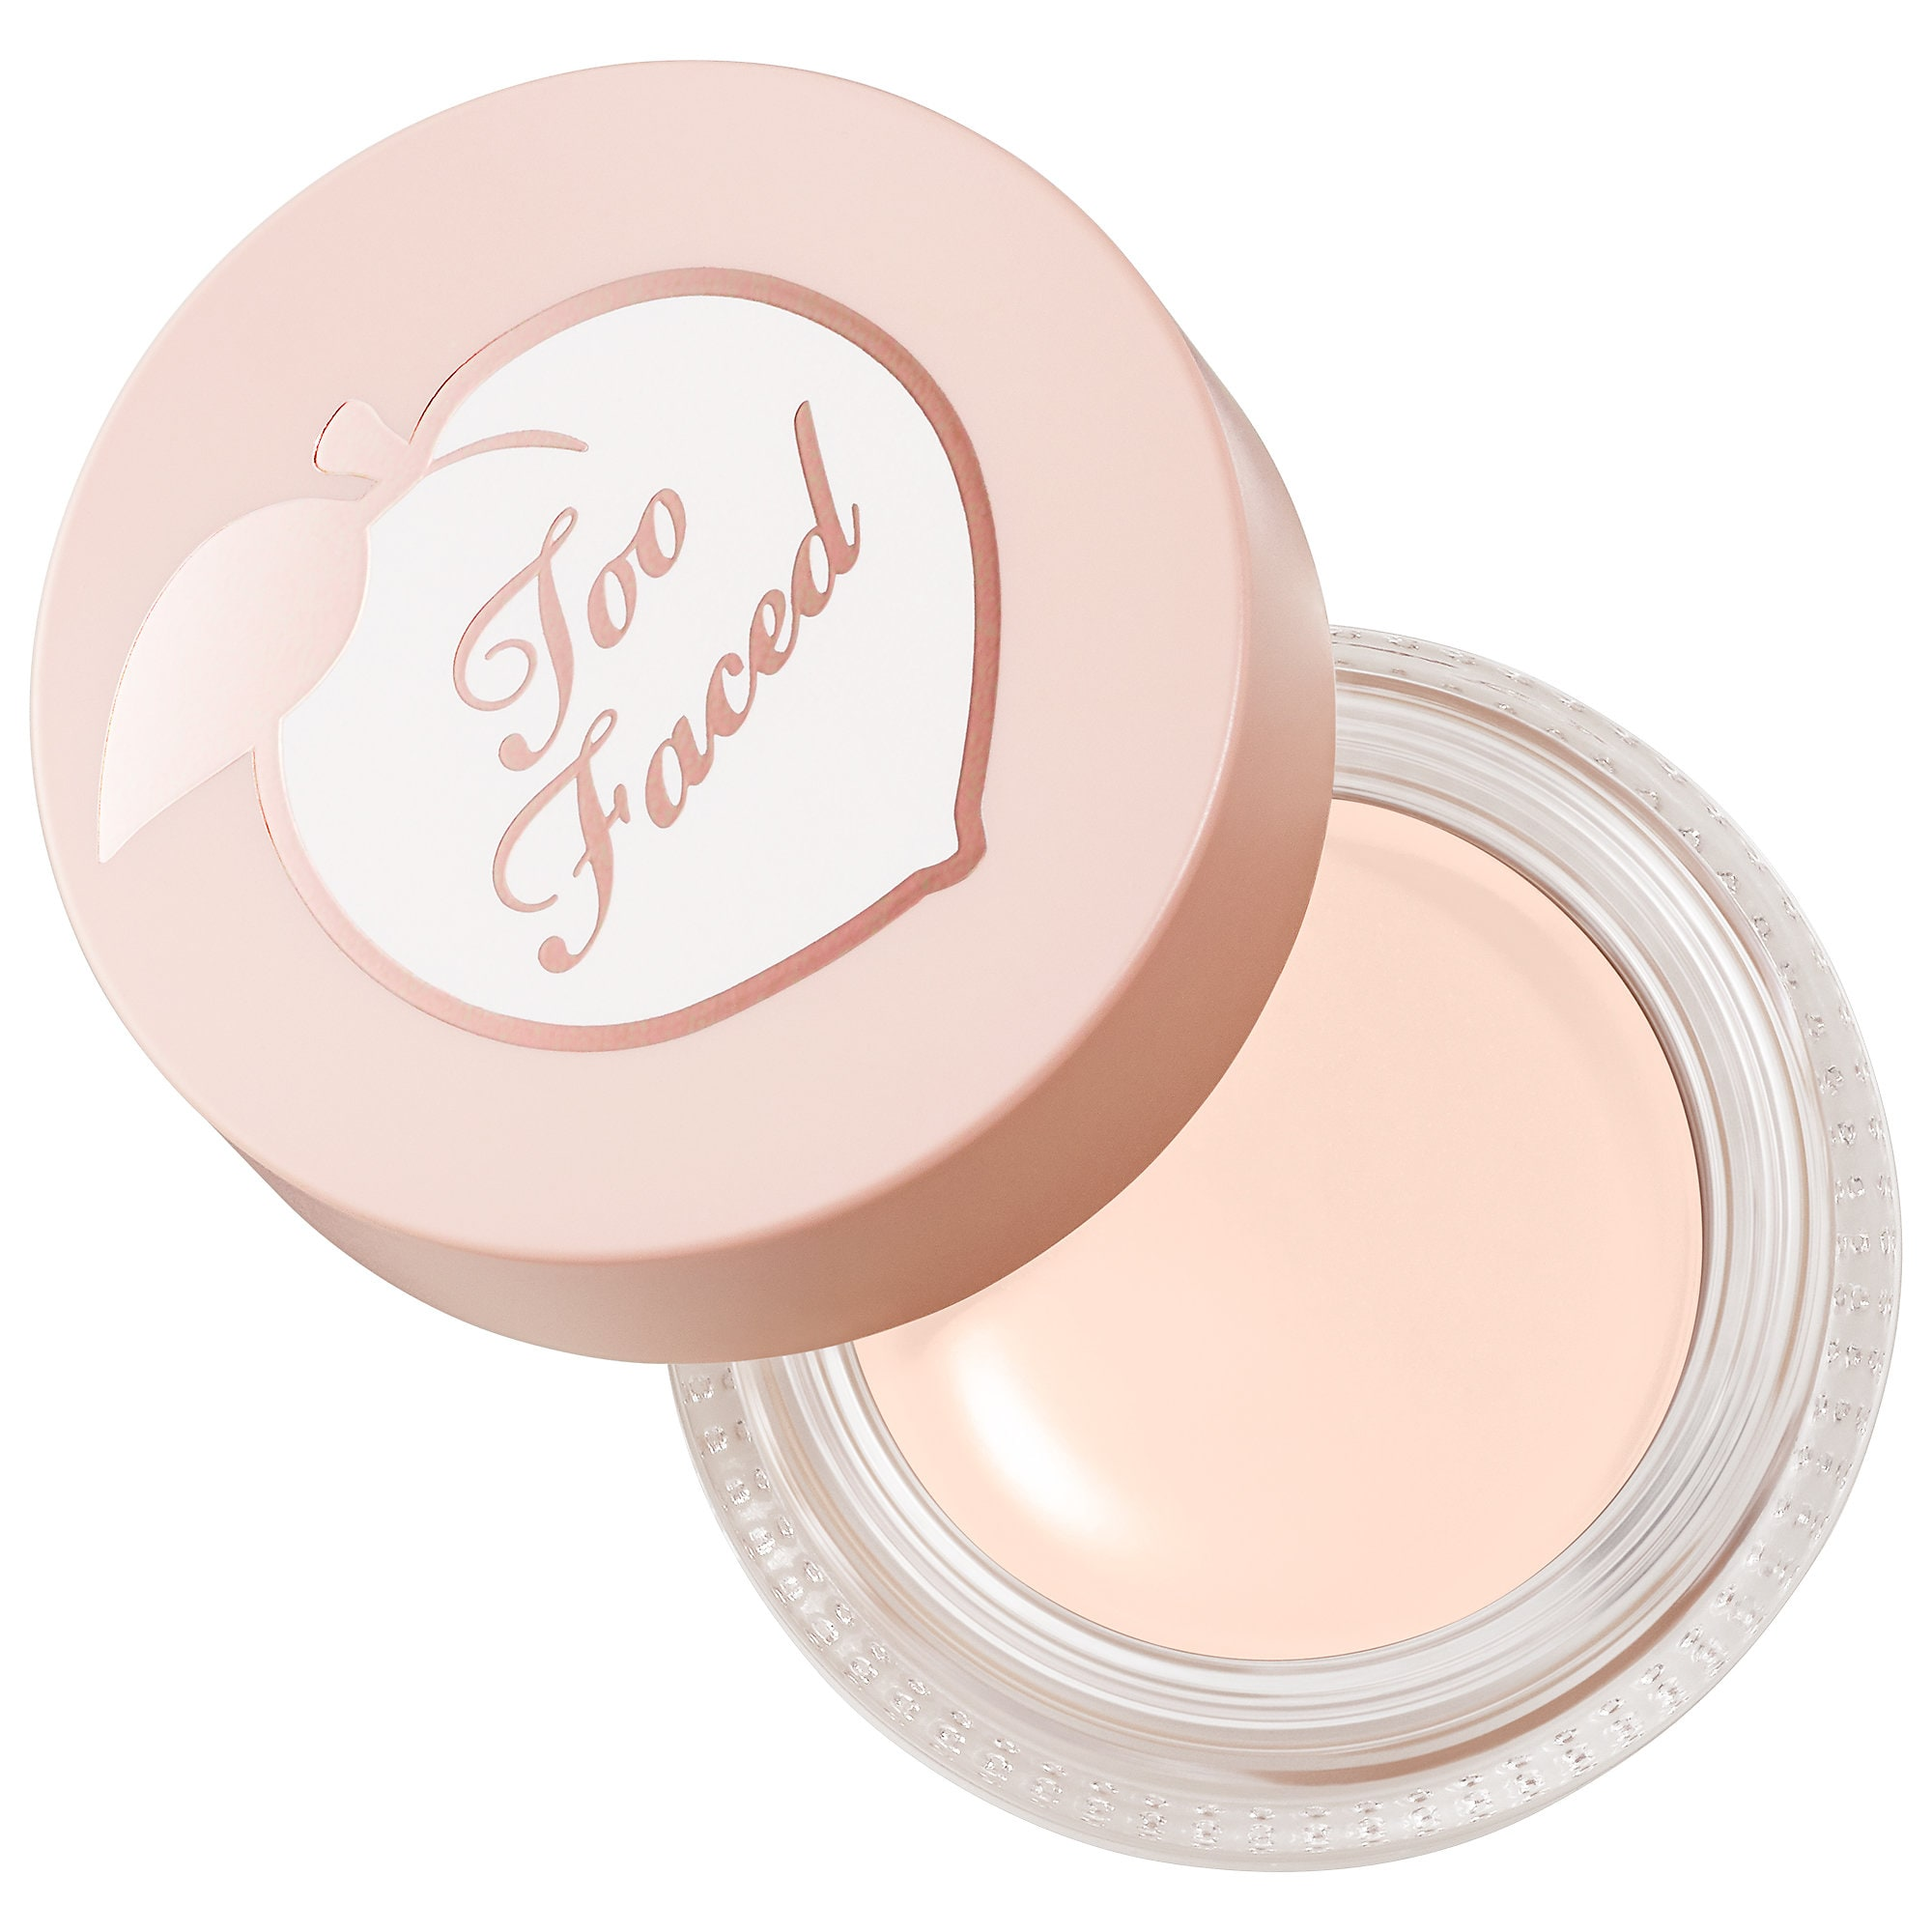 Toofaced - Peach Perfect Instant Coverage Concealer - Peaches and Cream Collection